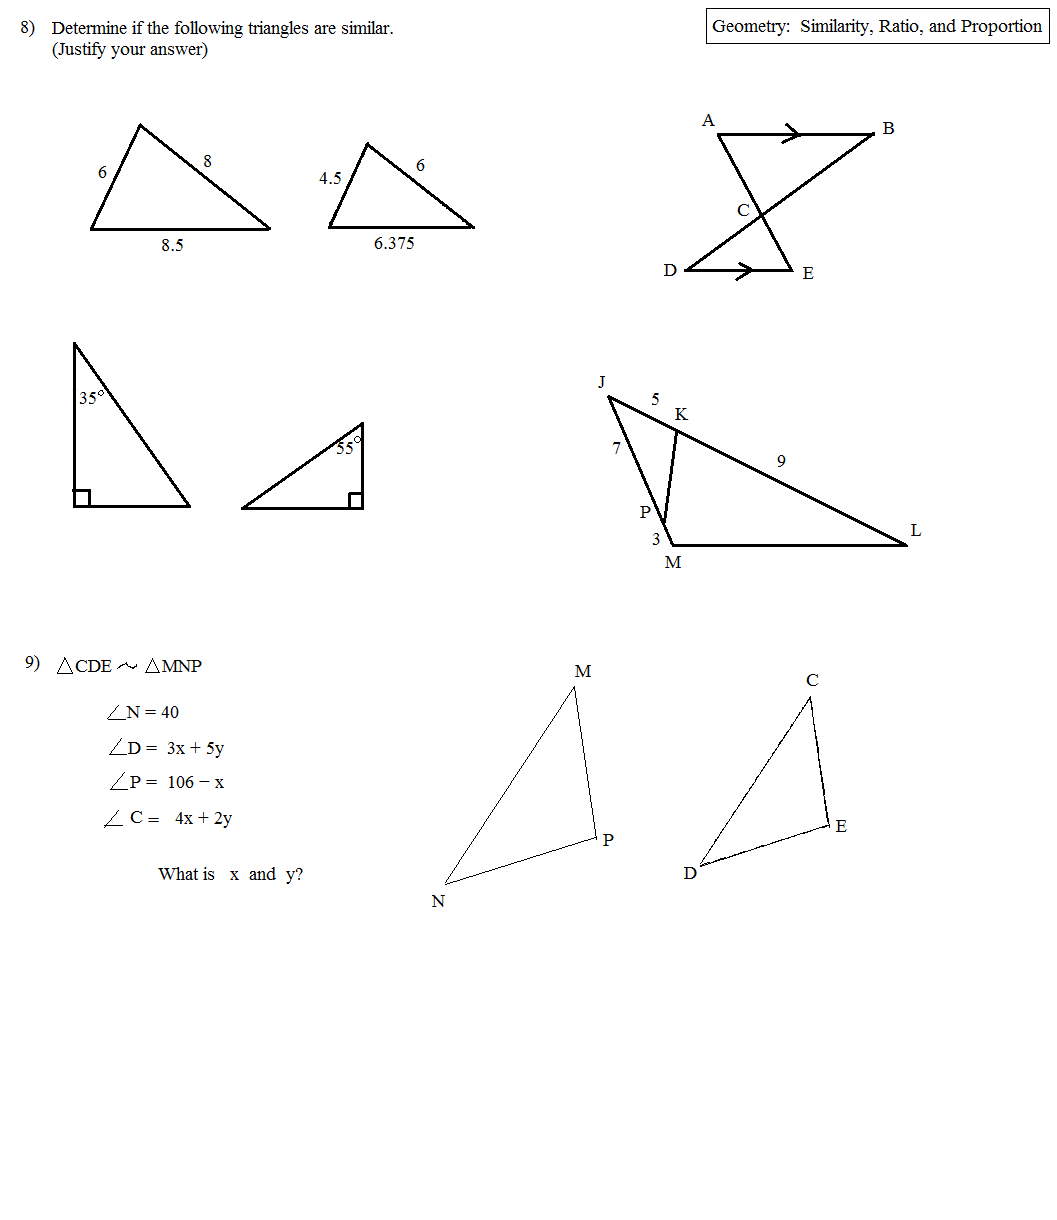 Math Plane  Similarity Ratio And Proportion Questions Intended For Similarity And Proportions Worksheet Answers